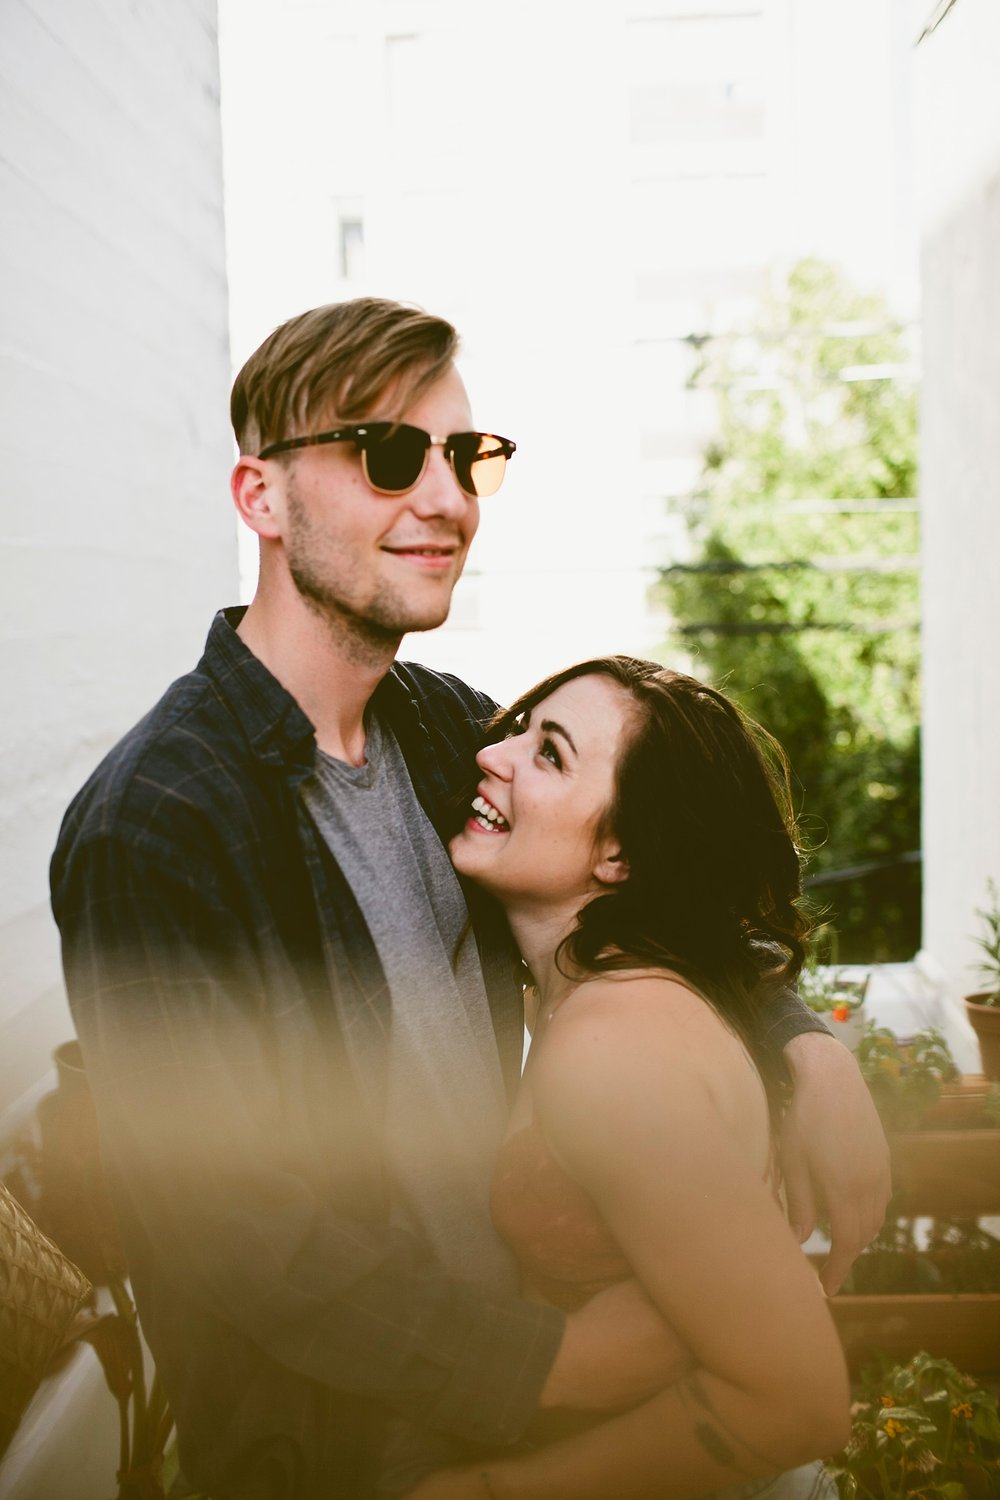 Beautiful Mundane-Seattle Elopement Photographer_050.jpg